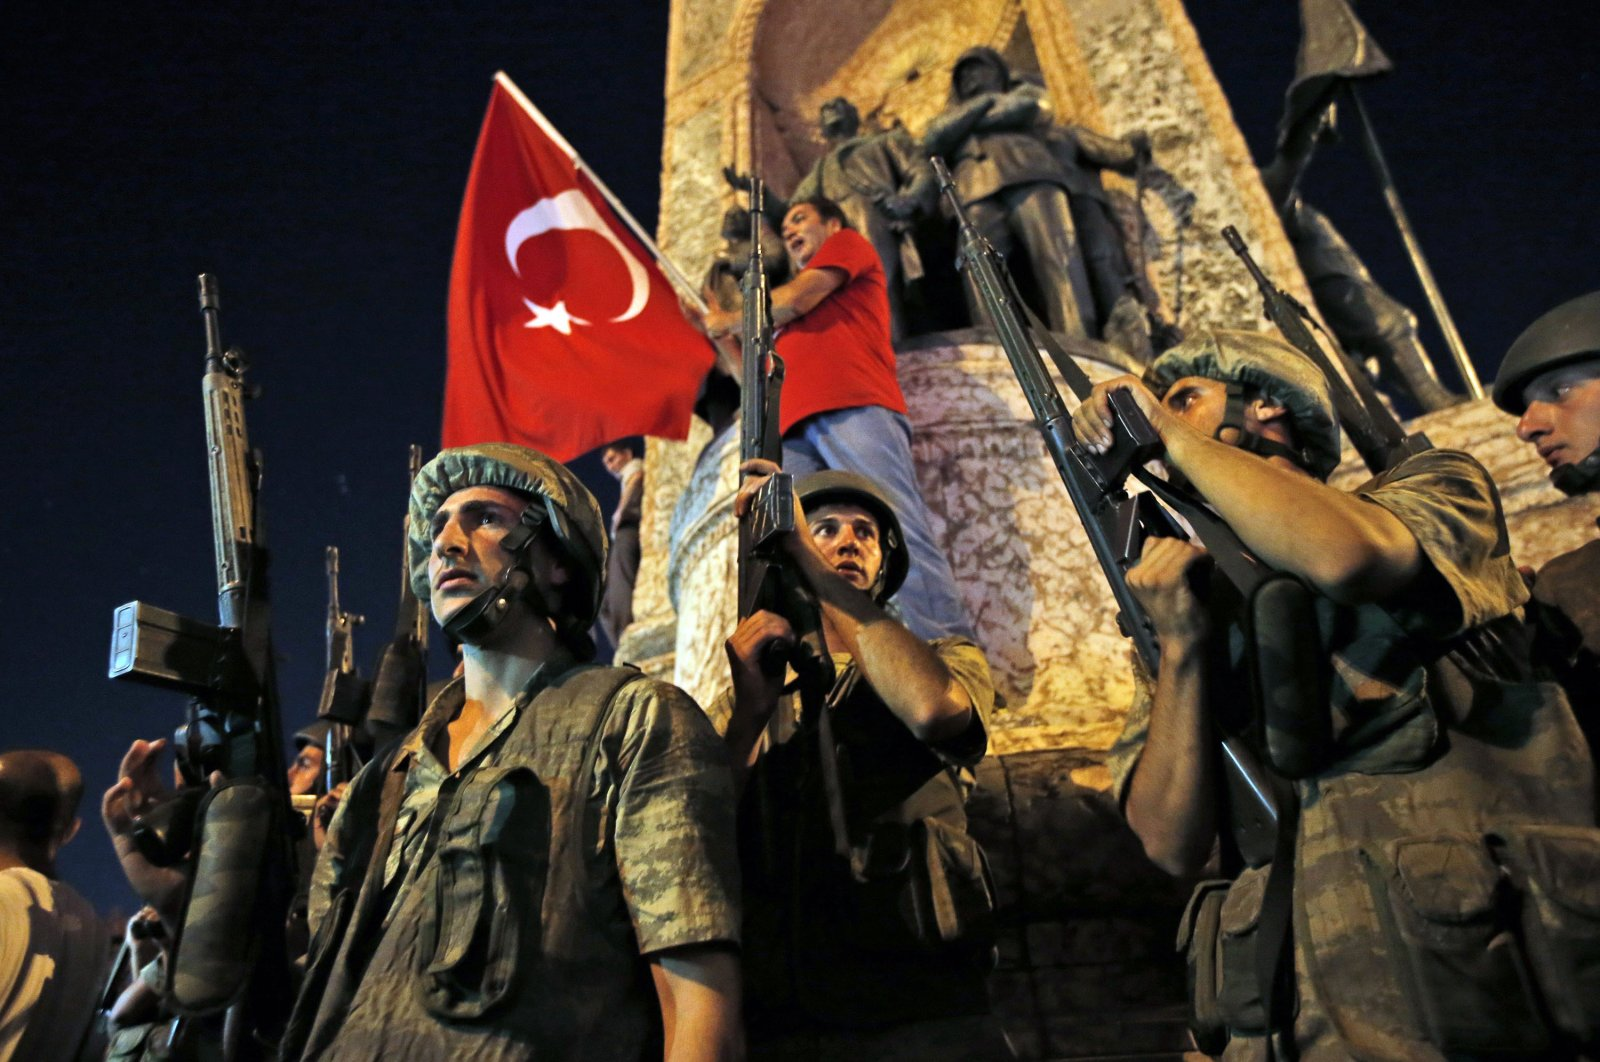 Turkish soldiers secure the area as supporters of Turkey's President Recep Tayyip Erdogan protest in Istanbul's Taksim square, July 16, 2016. (AP)